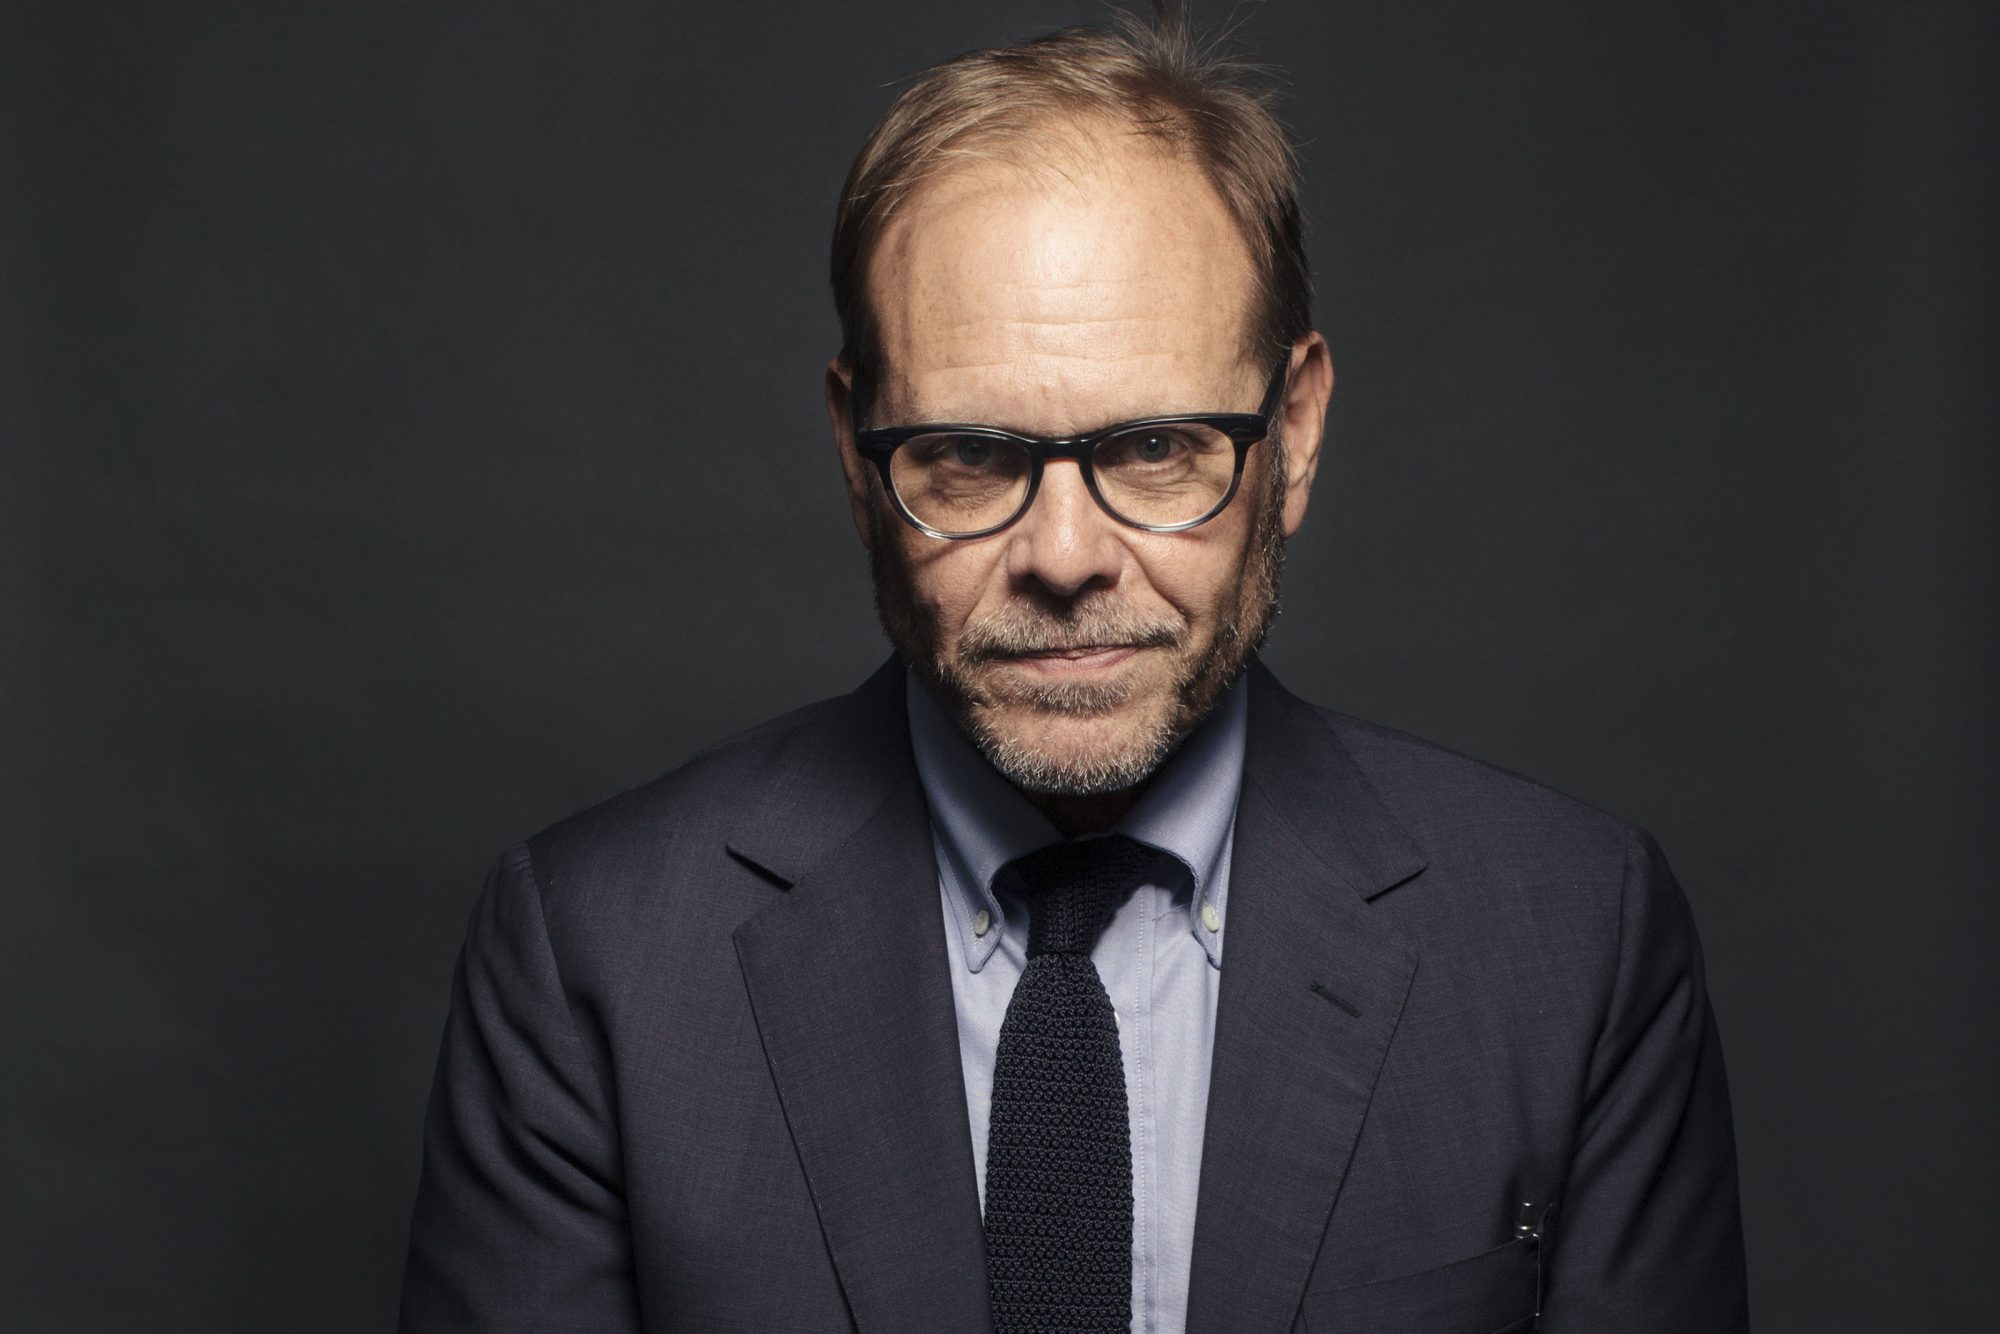 Alton Brown Learned a Harsh Lesson About Money When He Was 5—and It Still Haunts Him